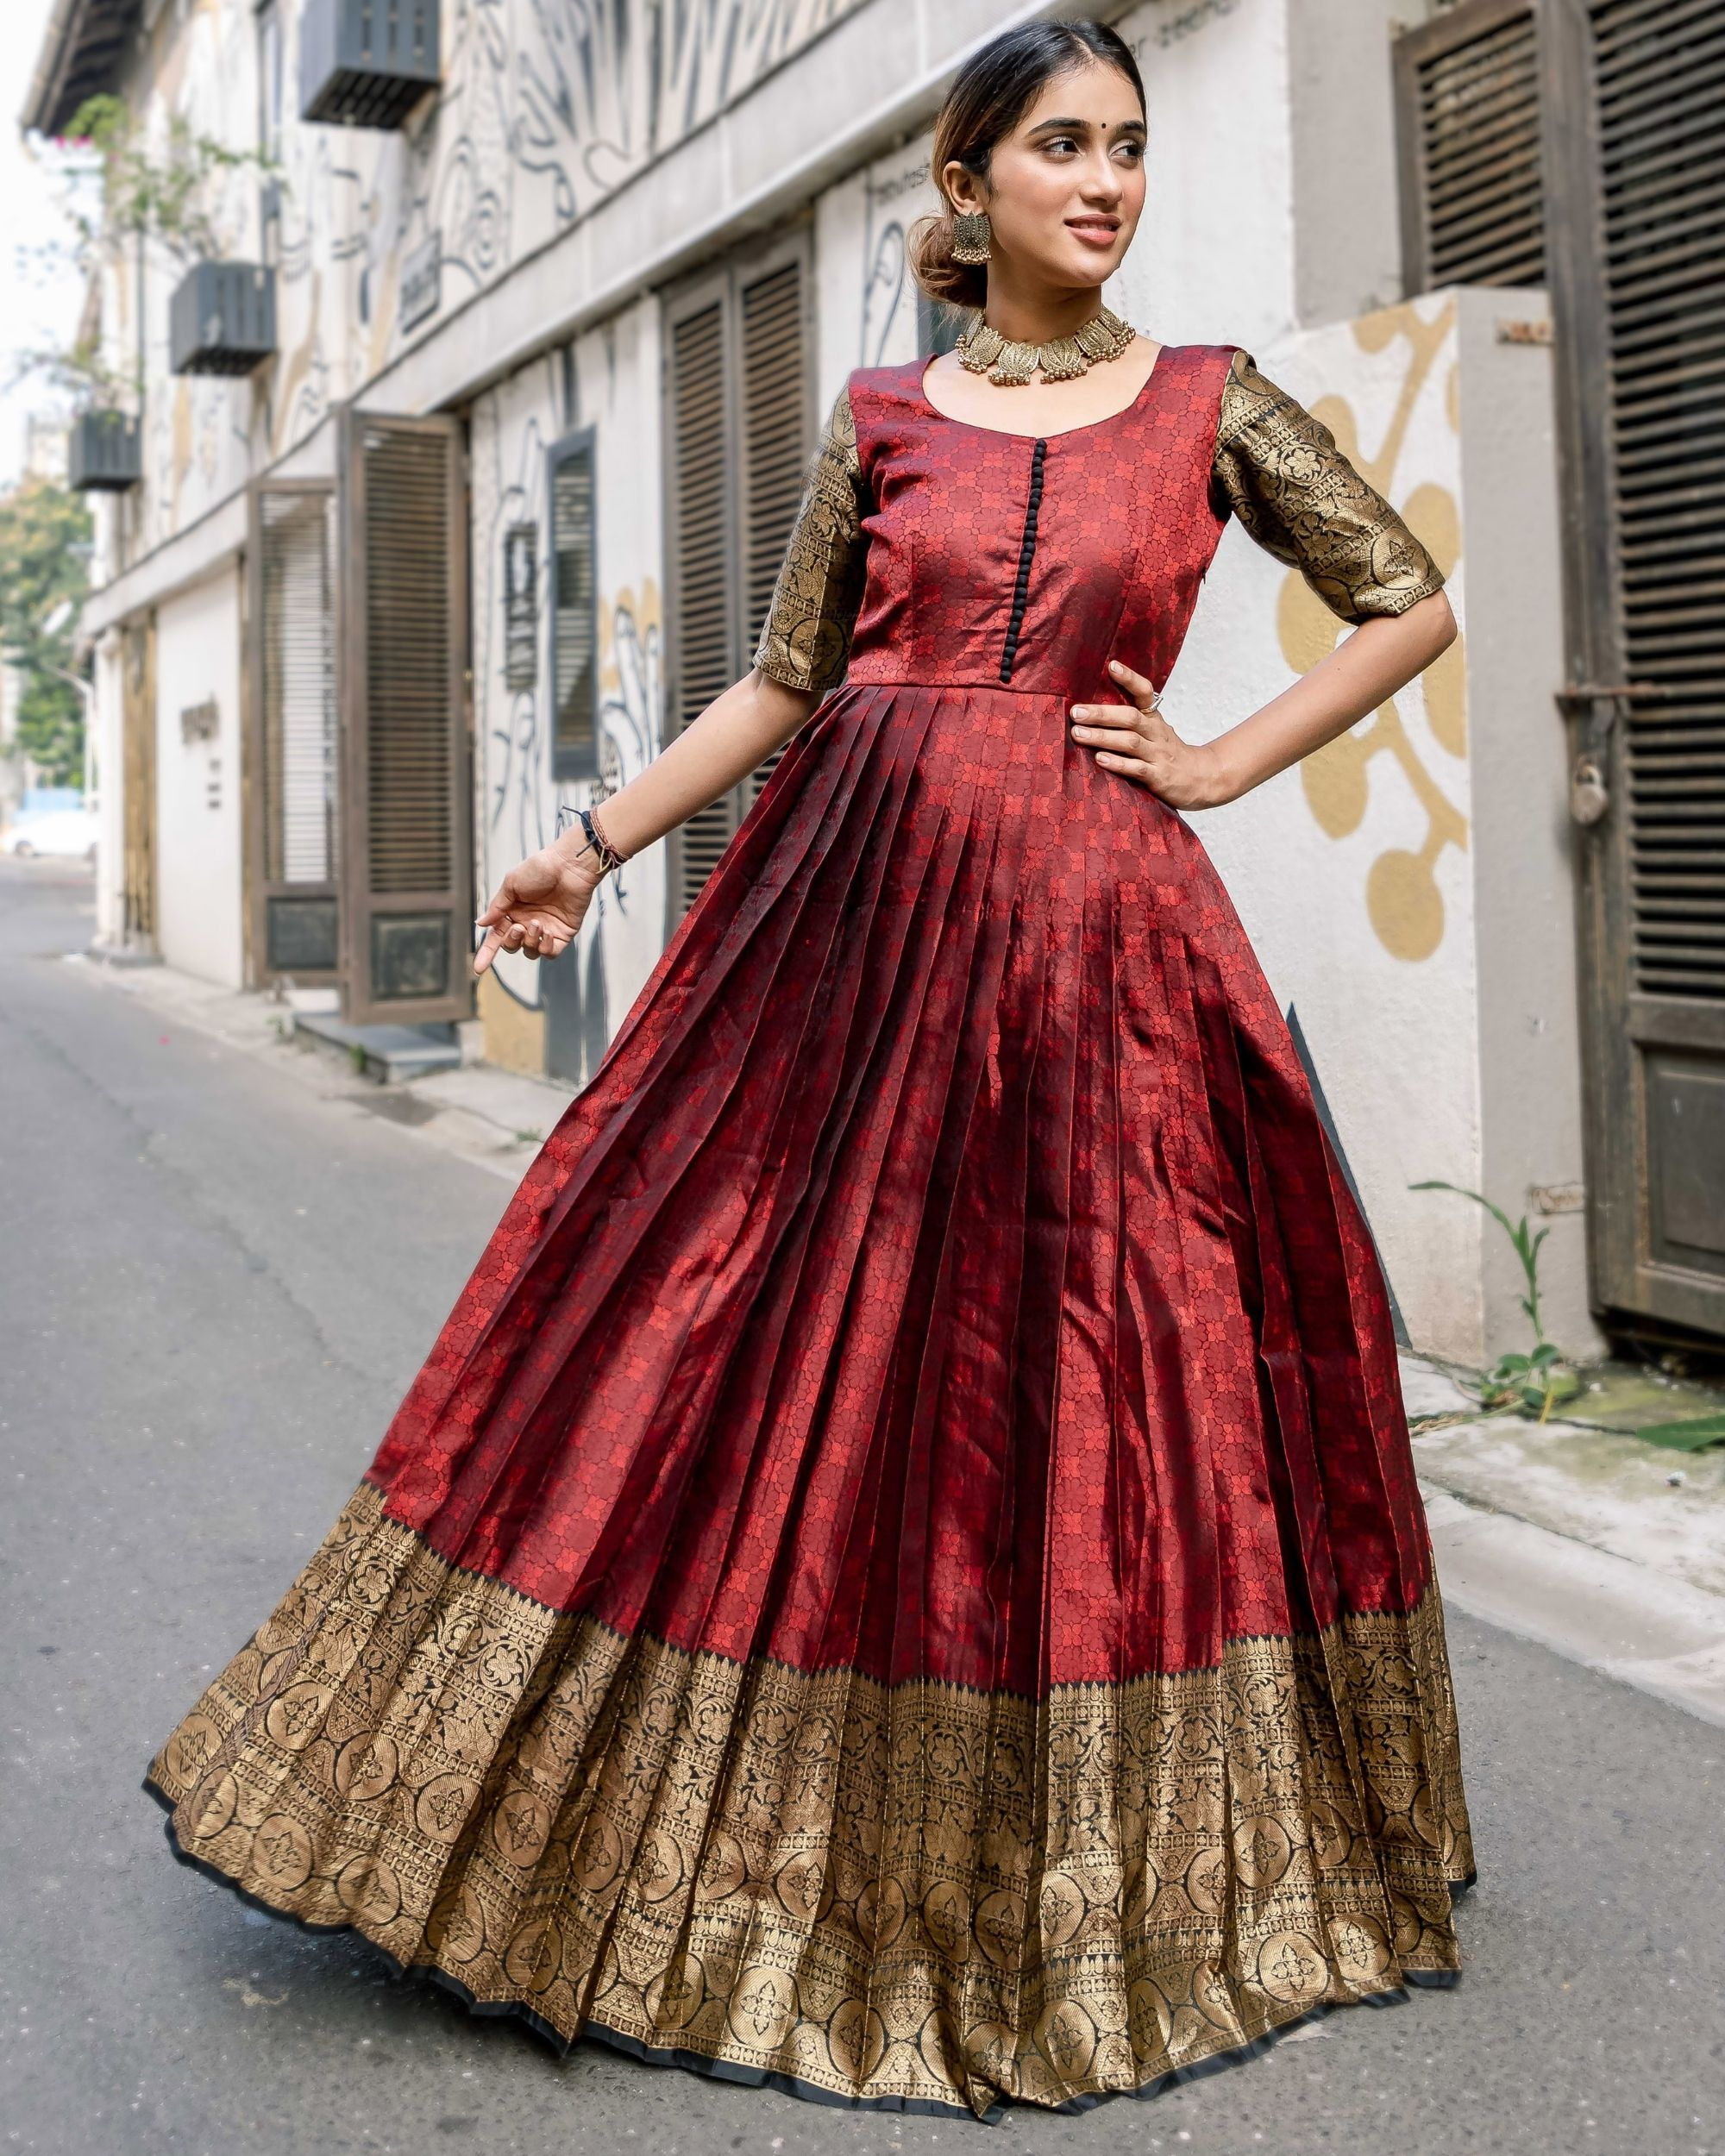 Red floral motif pleated dress with zari border detailing